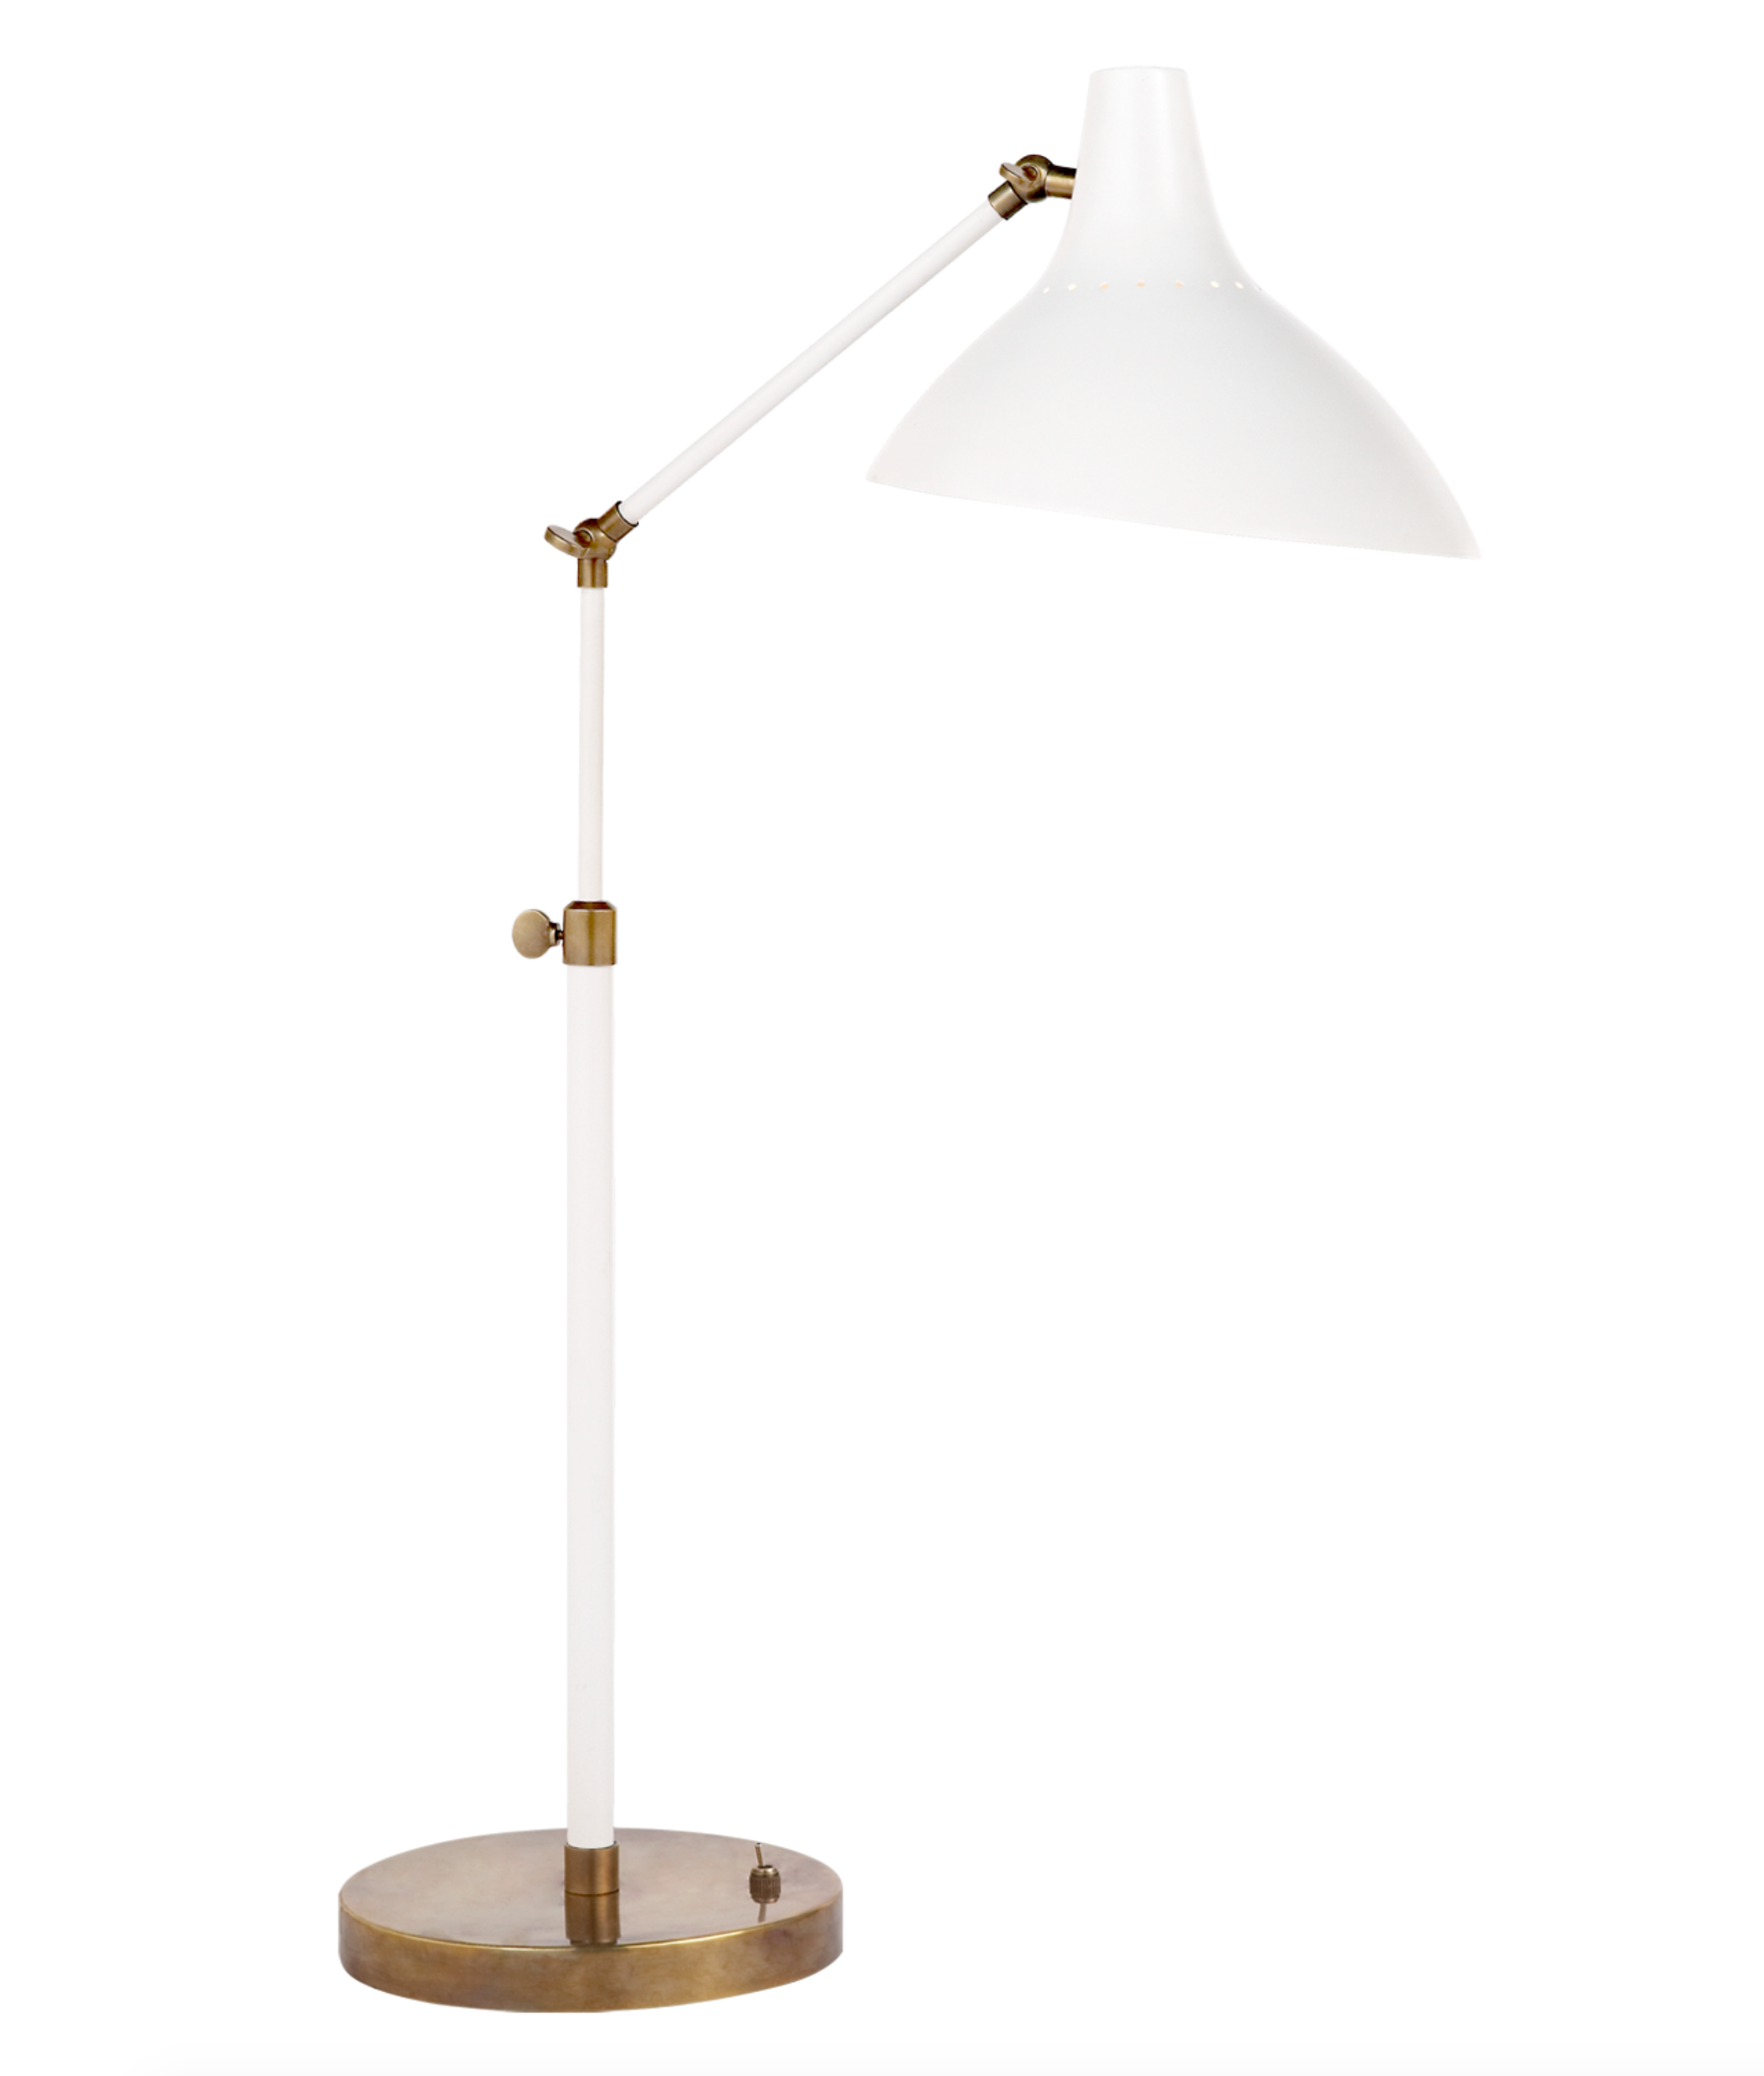 Charlton Table Lamp in White and Hand-Rubbed Antique Brass